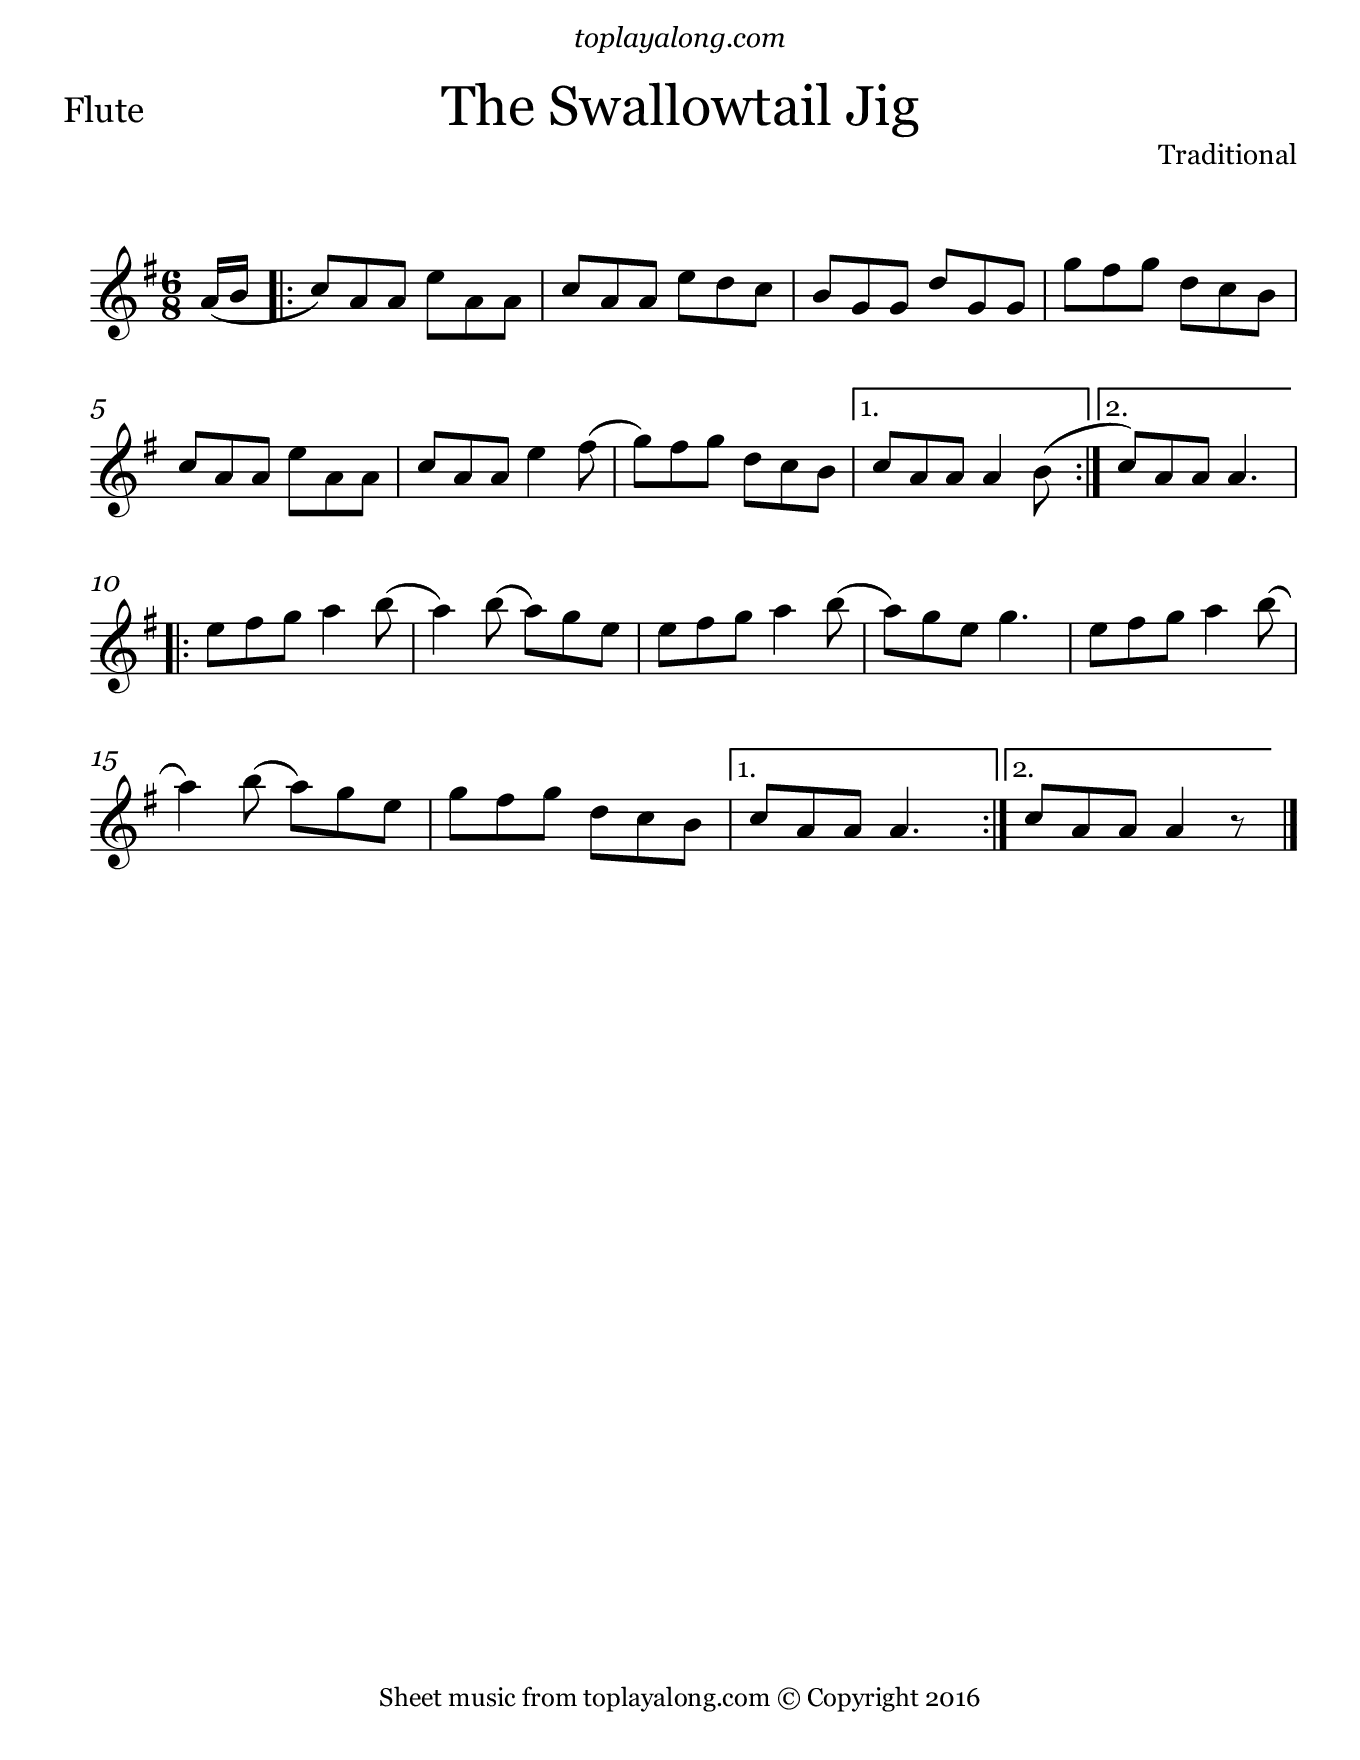 The Swallowtail Jig. Sheet music for Flute, page 1.